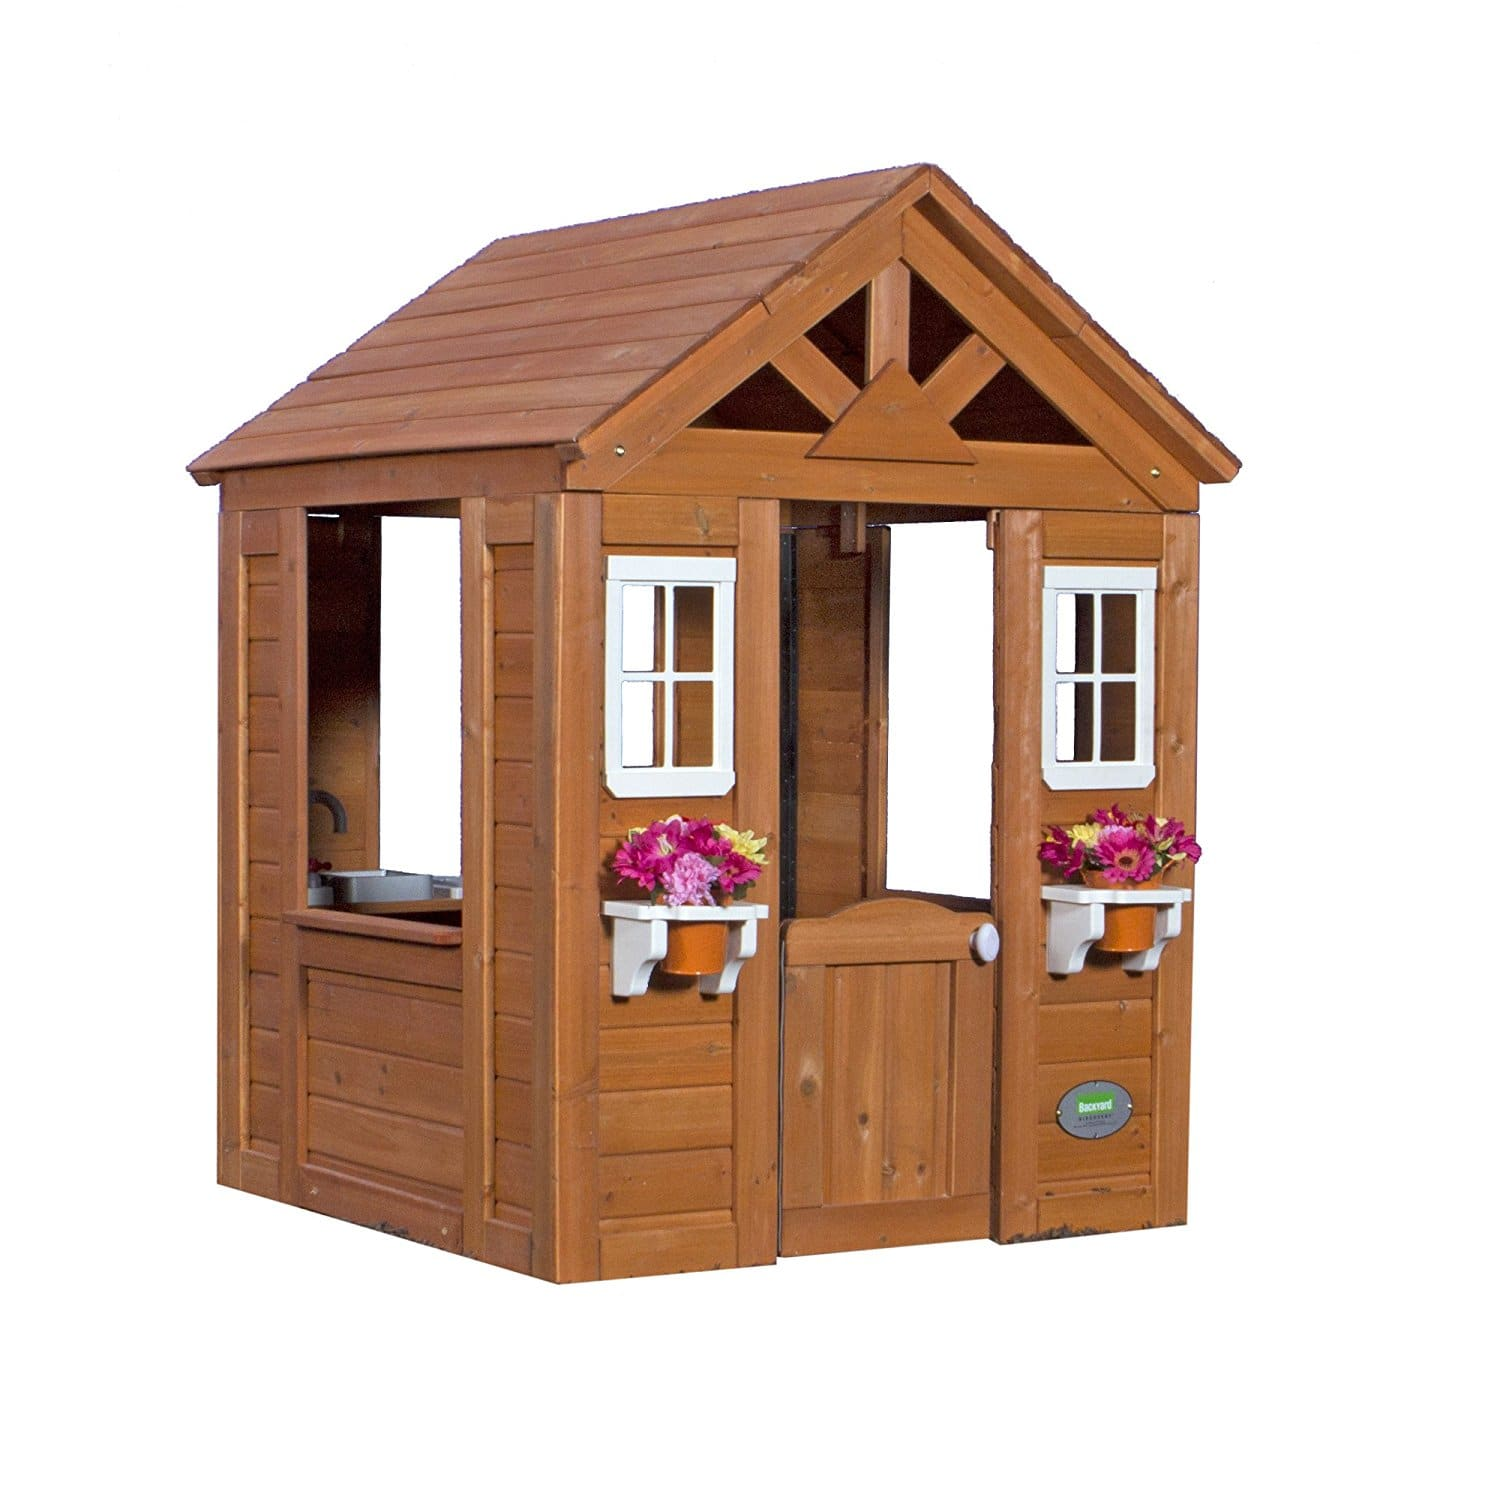 walmart ymmv Timberlake playhouse $99 at Walmart B&M YMMV